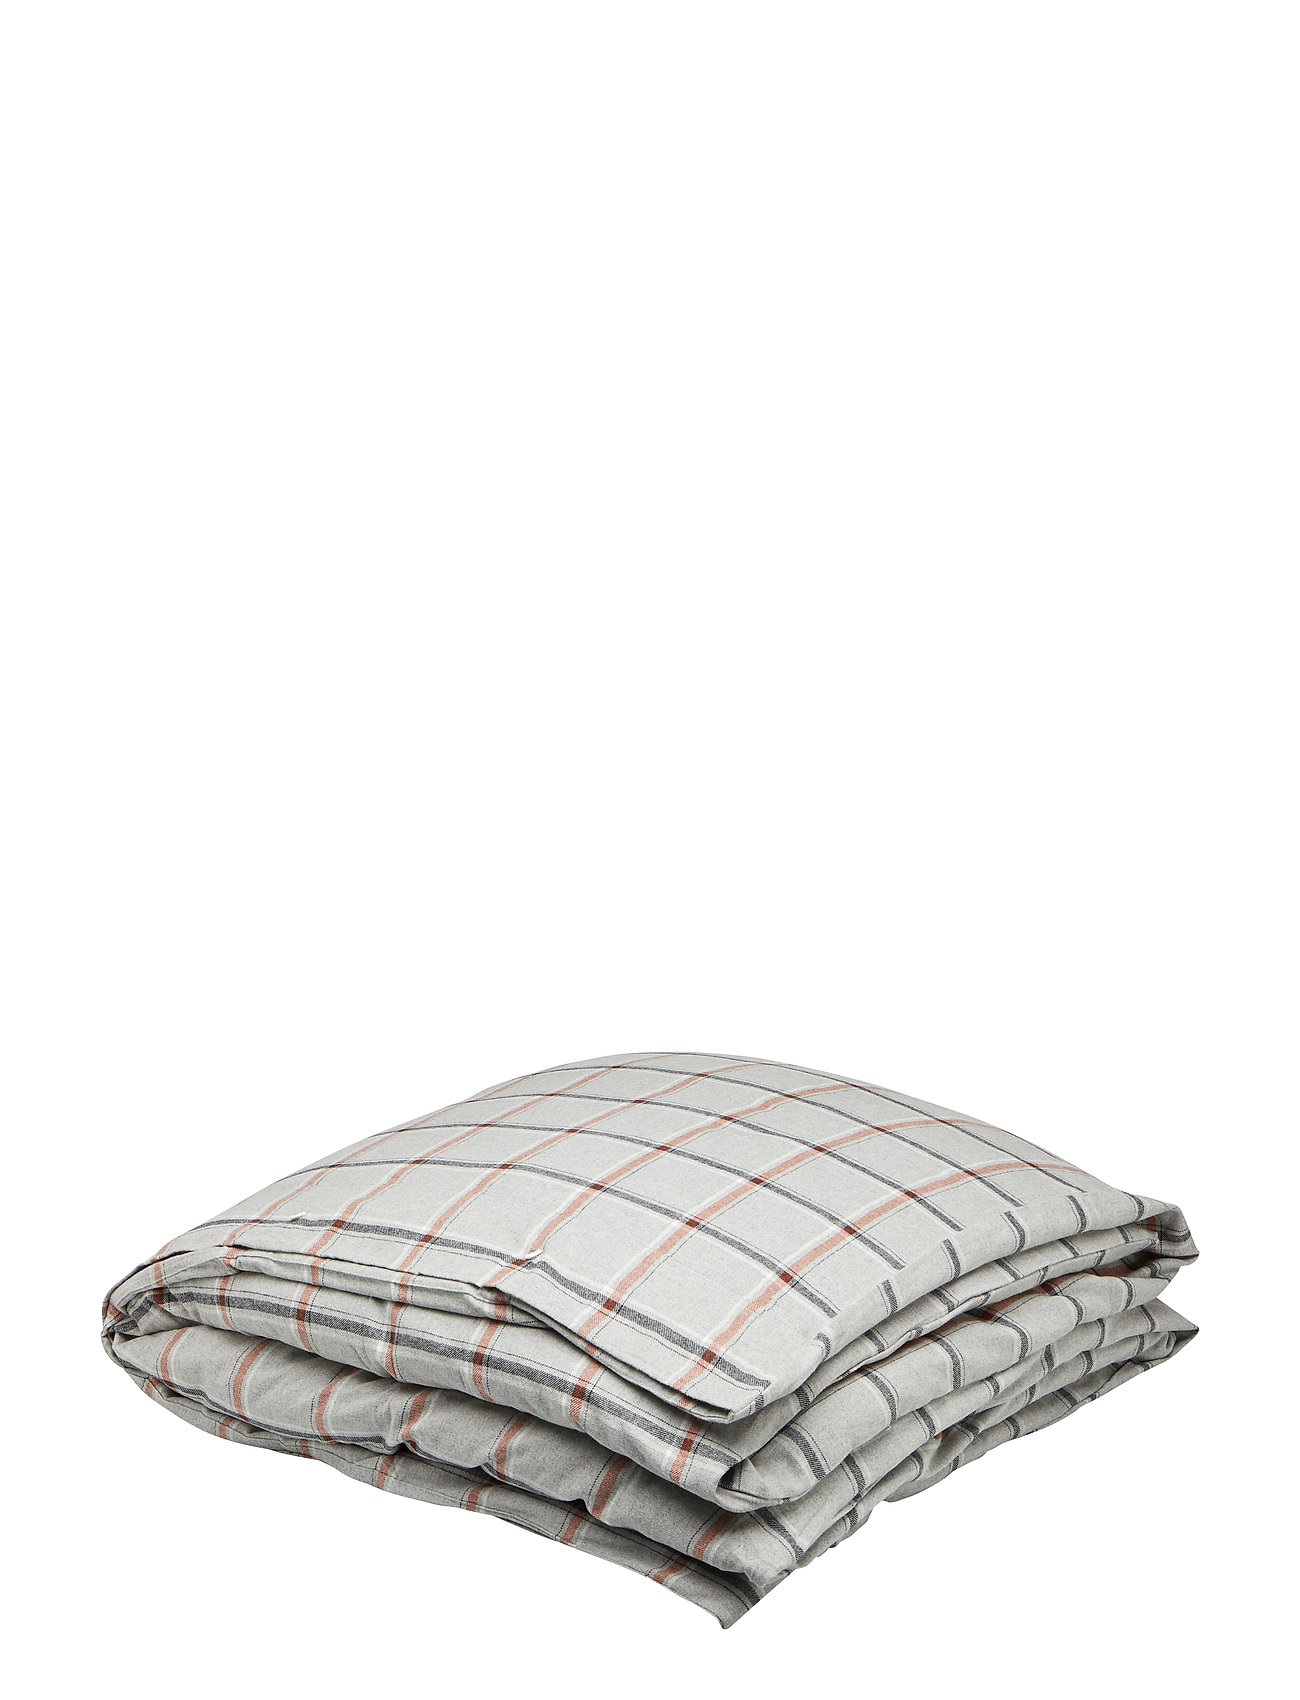 Lexington Home Checked Flannel Duvet - LT GRAY/WHITE/RUST CHECK